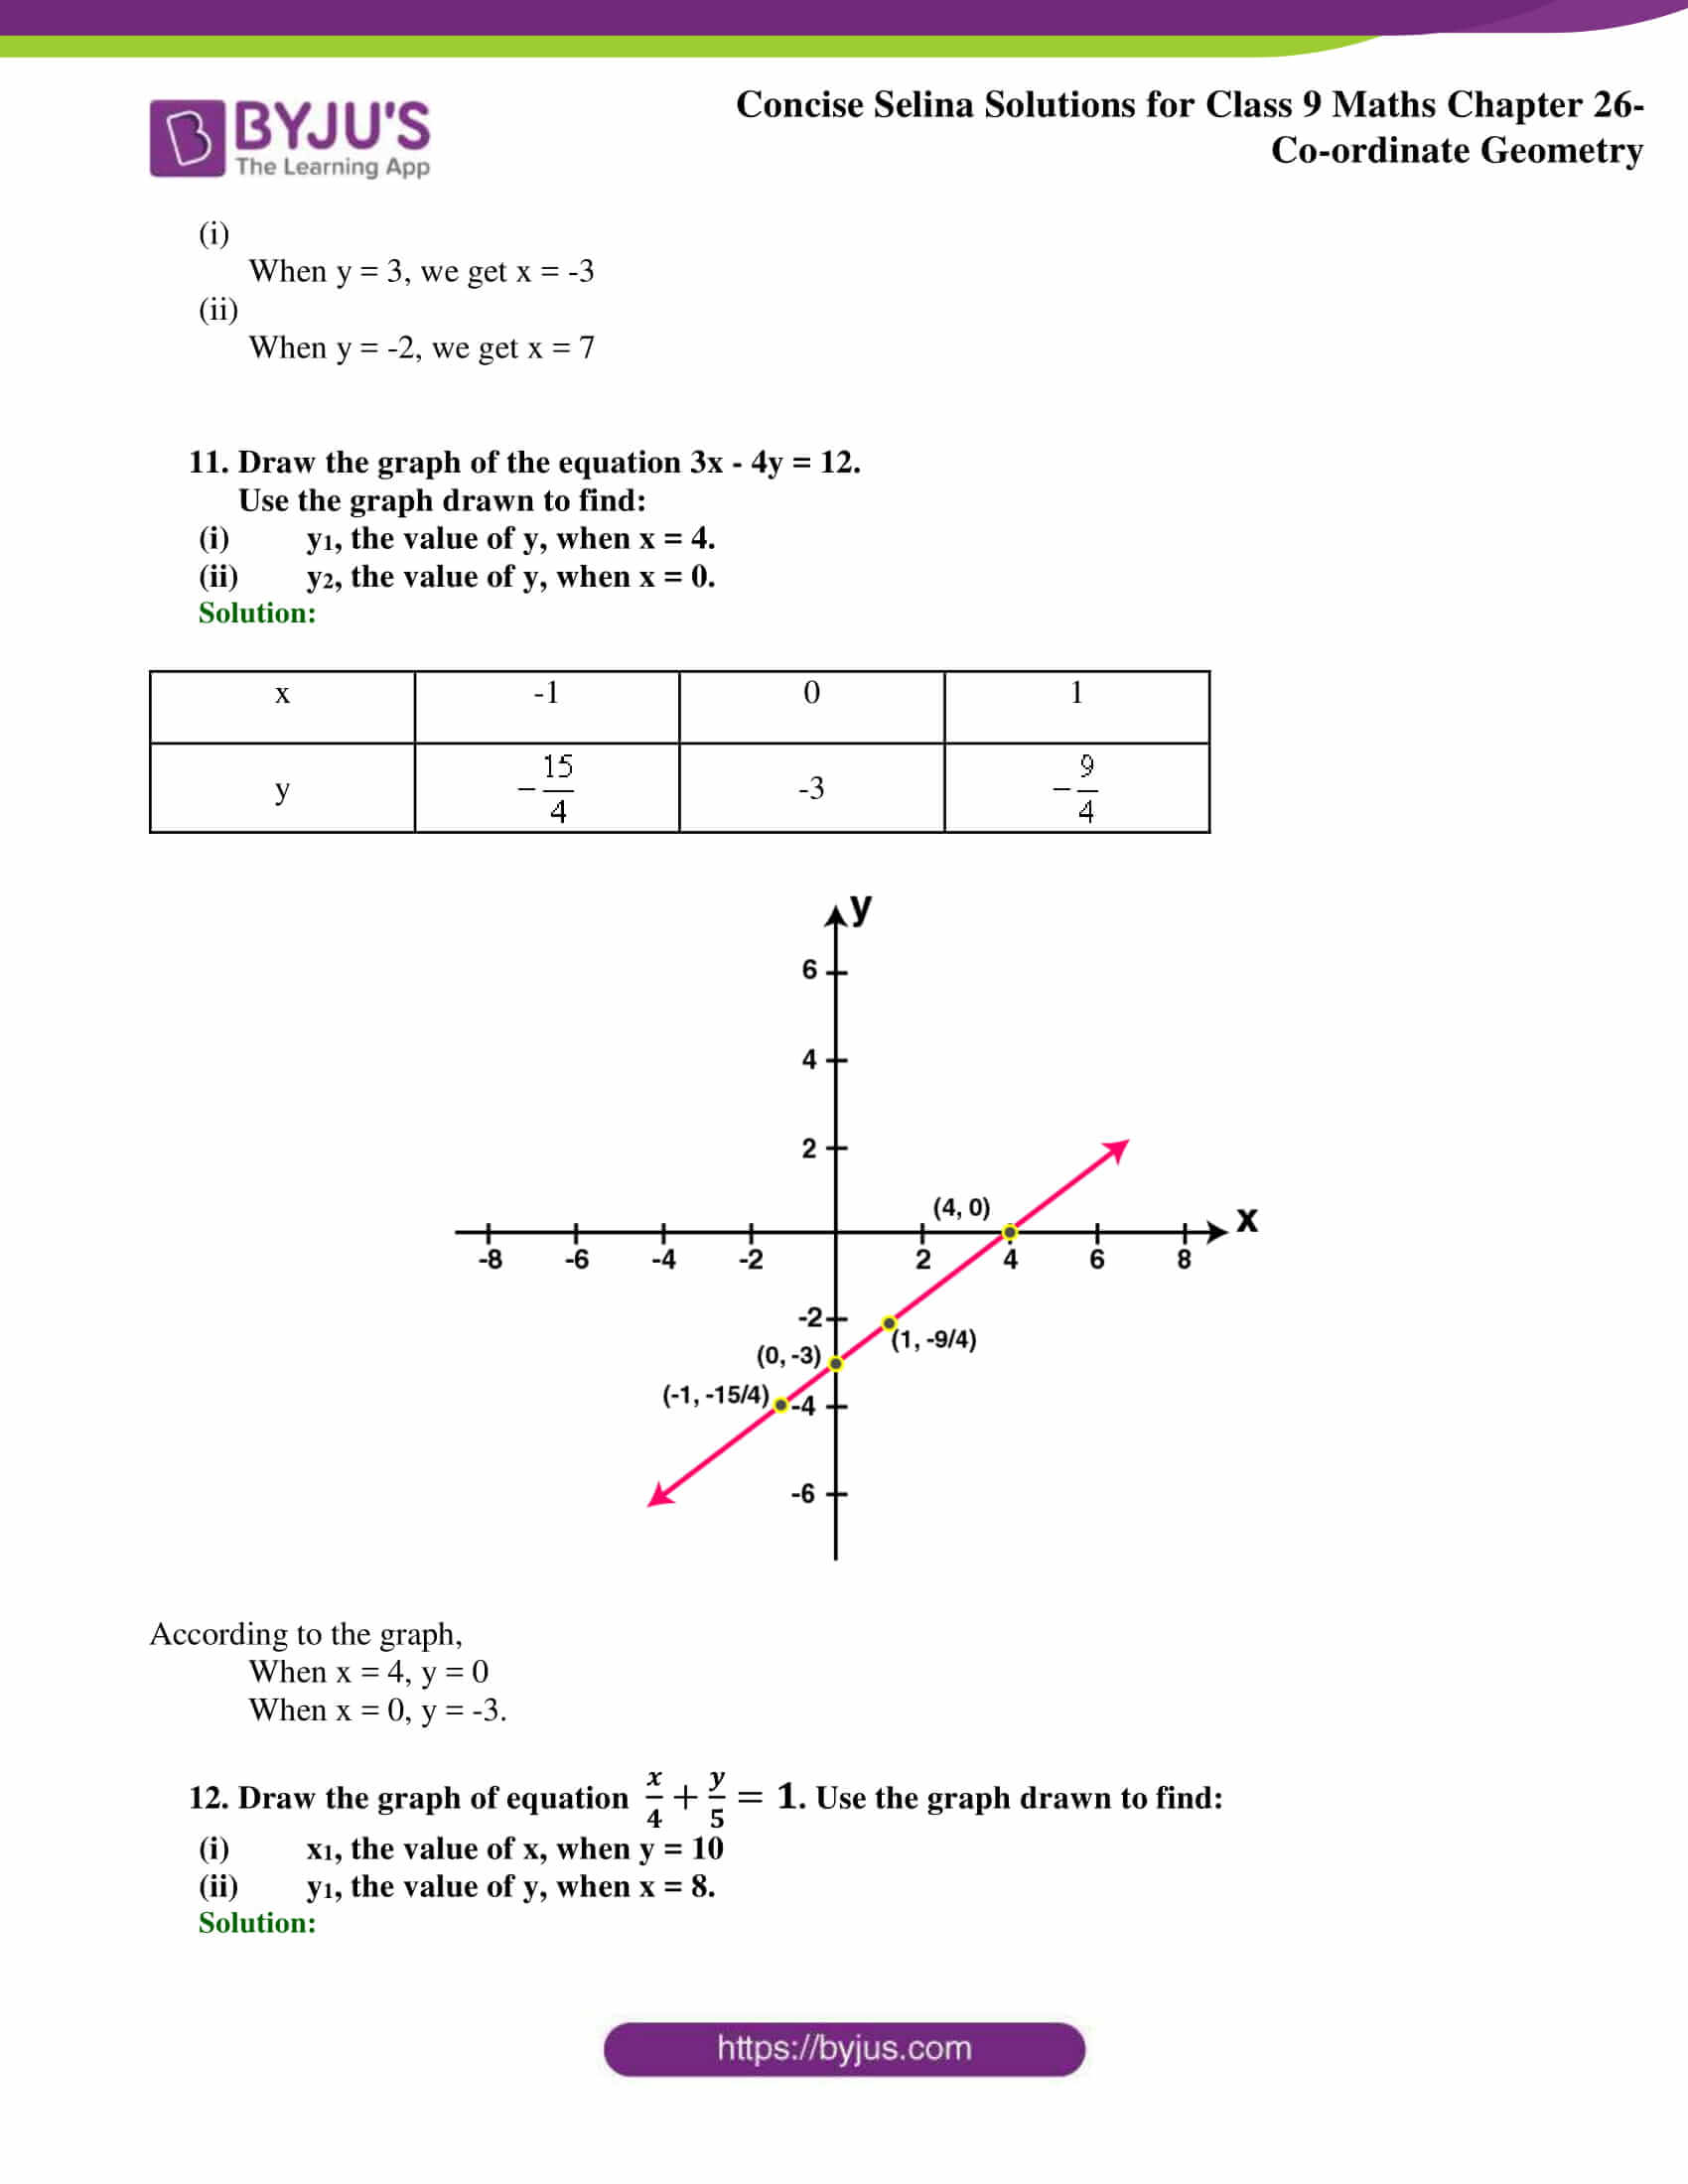 Selina Solutions for Class 9 Maths Chapter 26 part 42